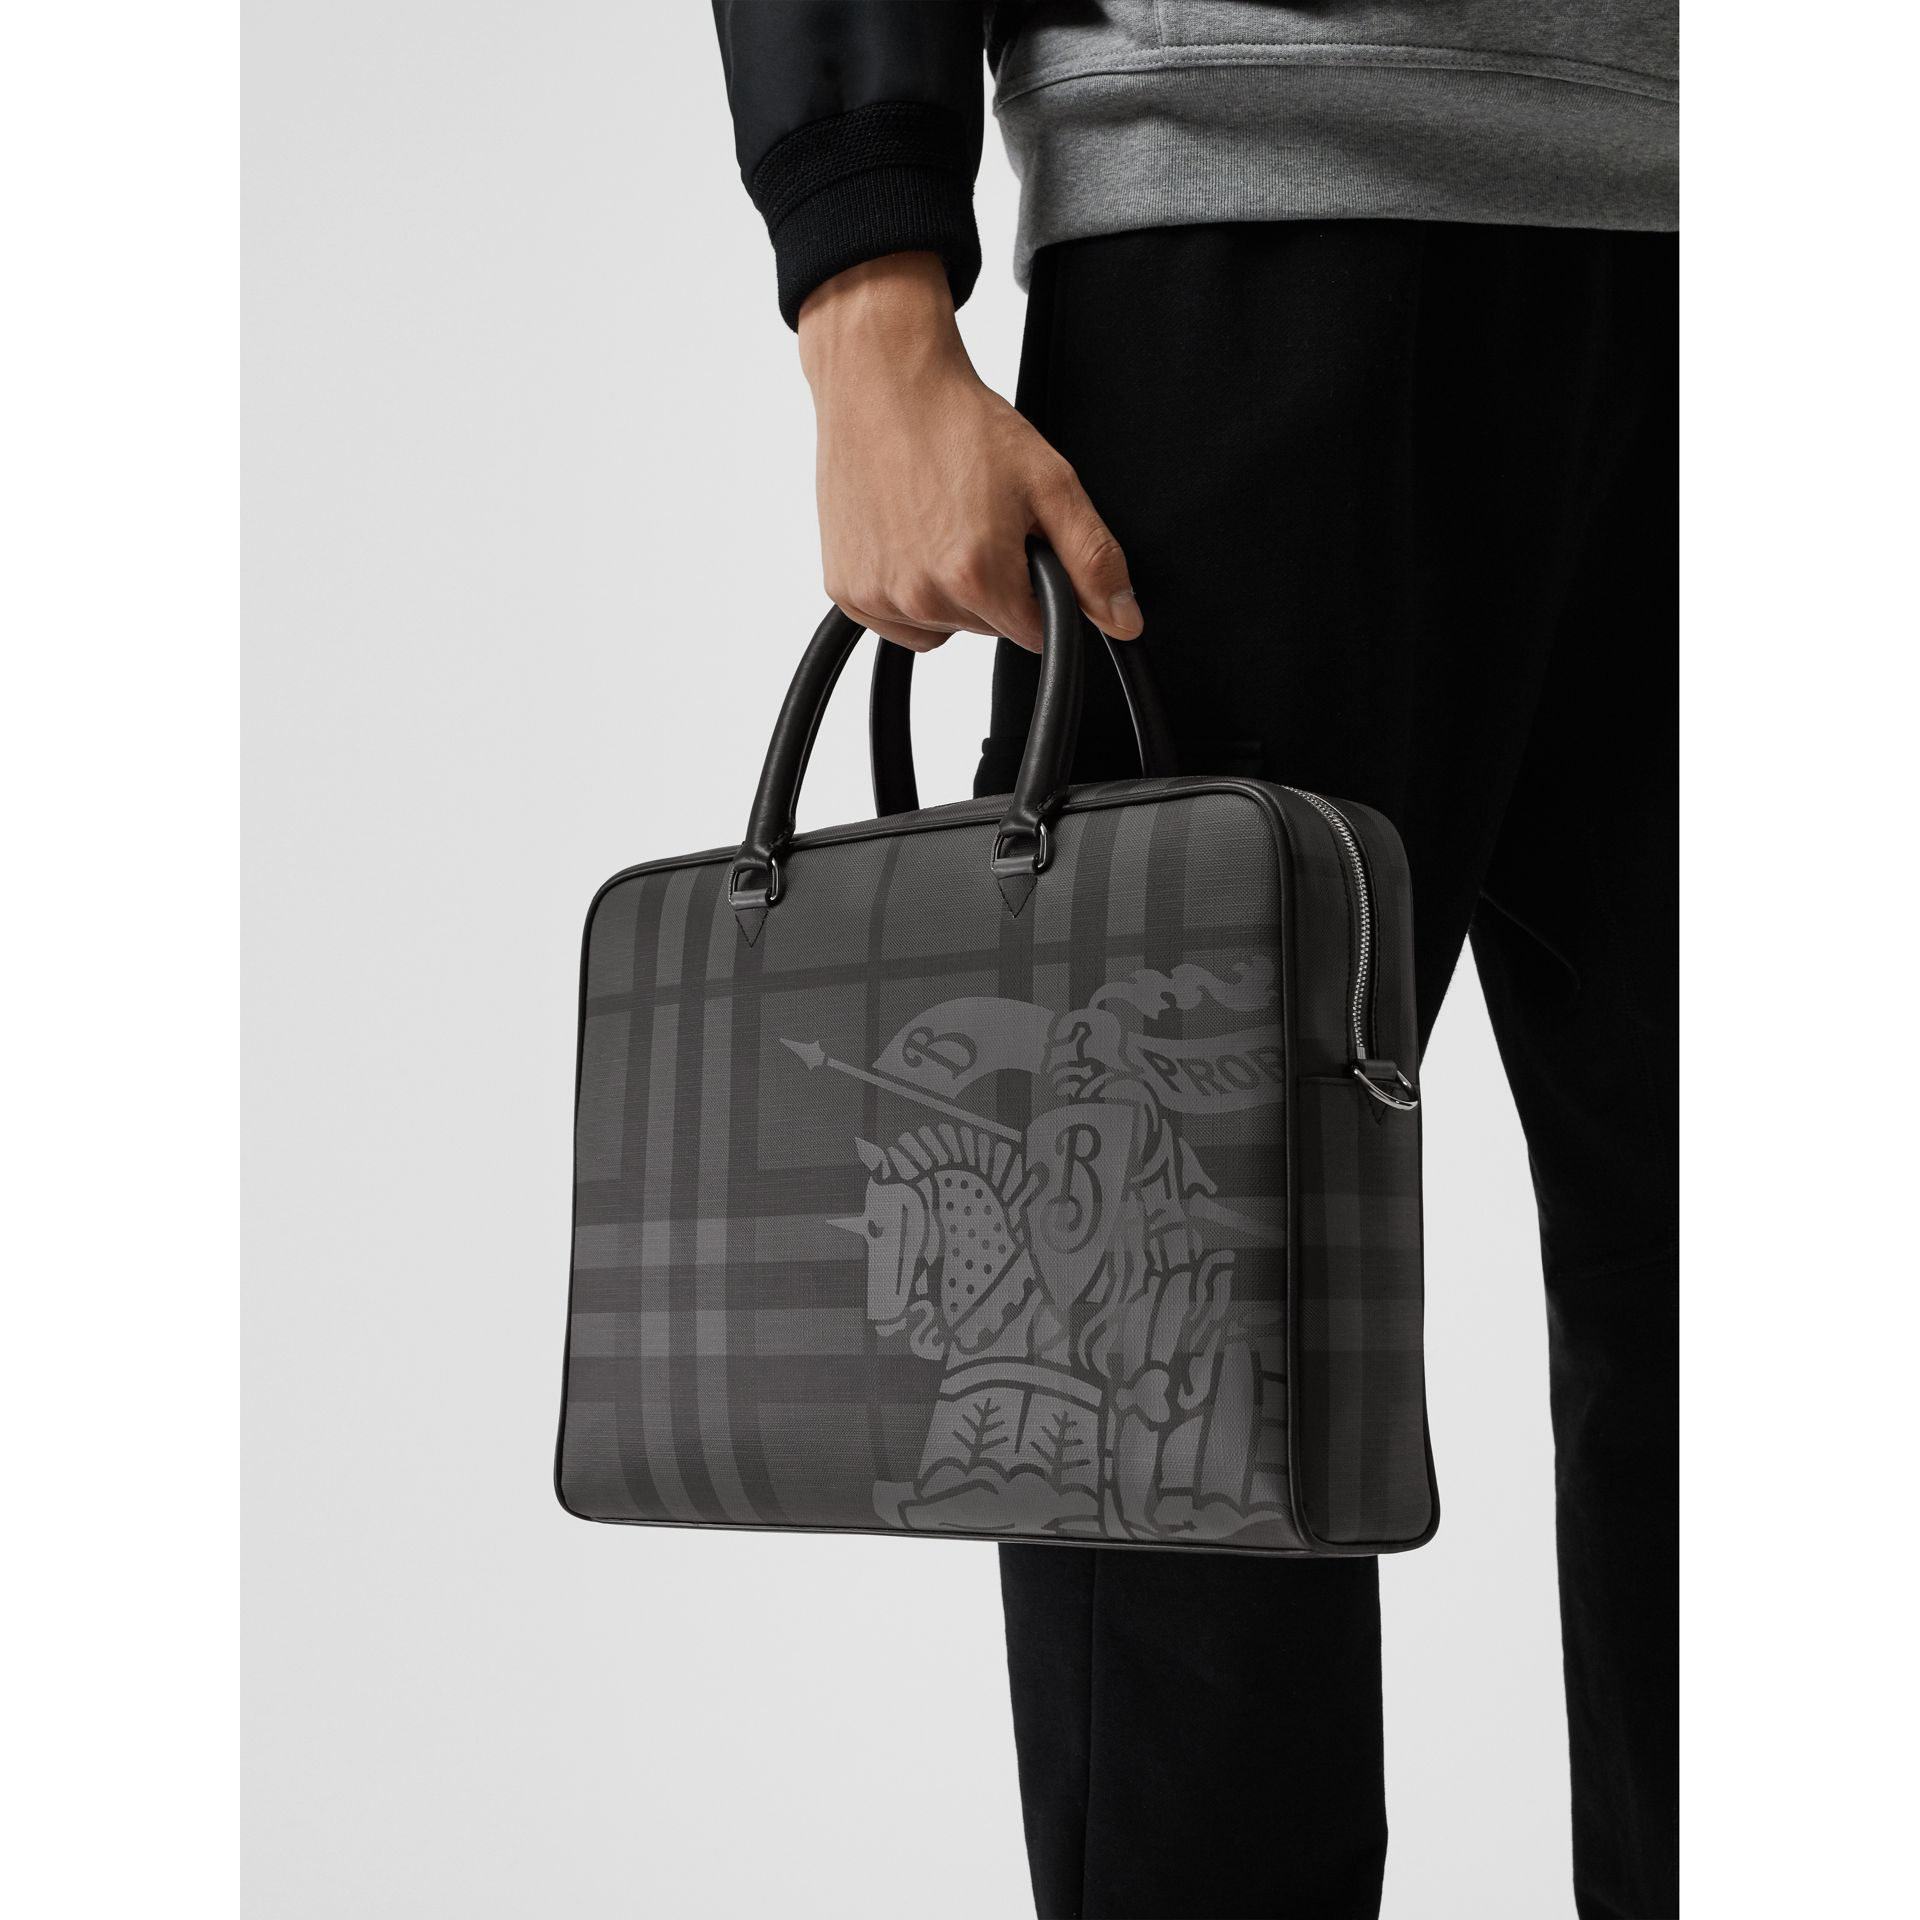 EKD London Check and Leather Briefcase in Charcoal/black - Men | Burberry - gallery image 3